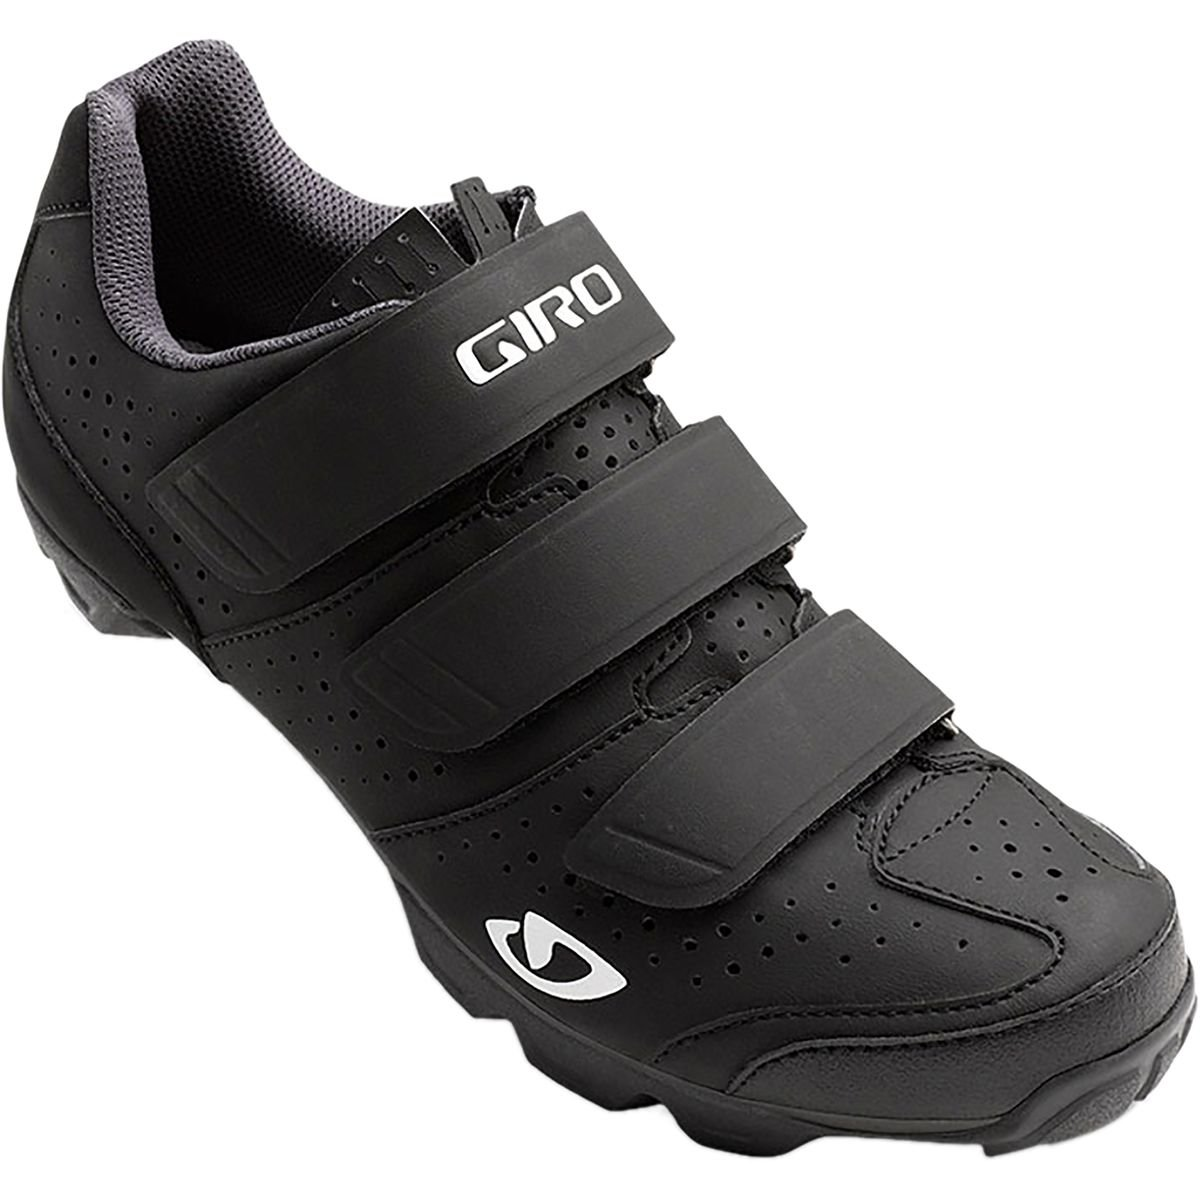 Giro 2017 Womens Riela R Dirt Cycling Shoes (Black/Charcoal - 36)